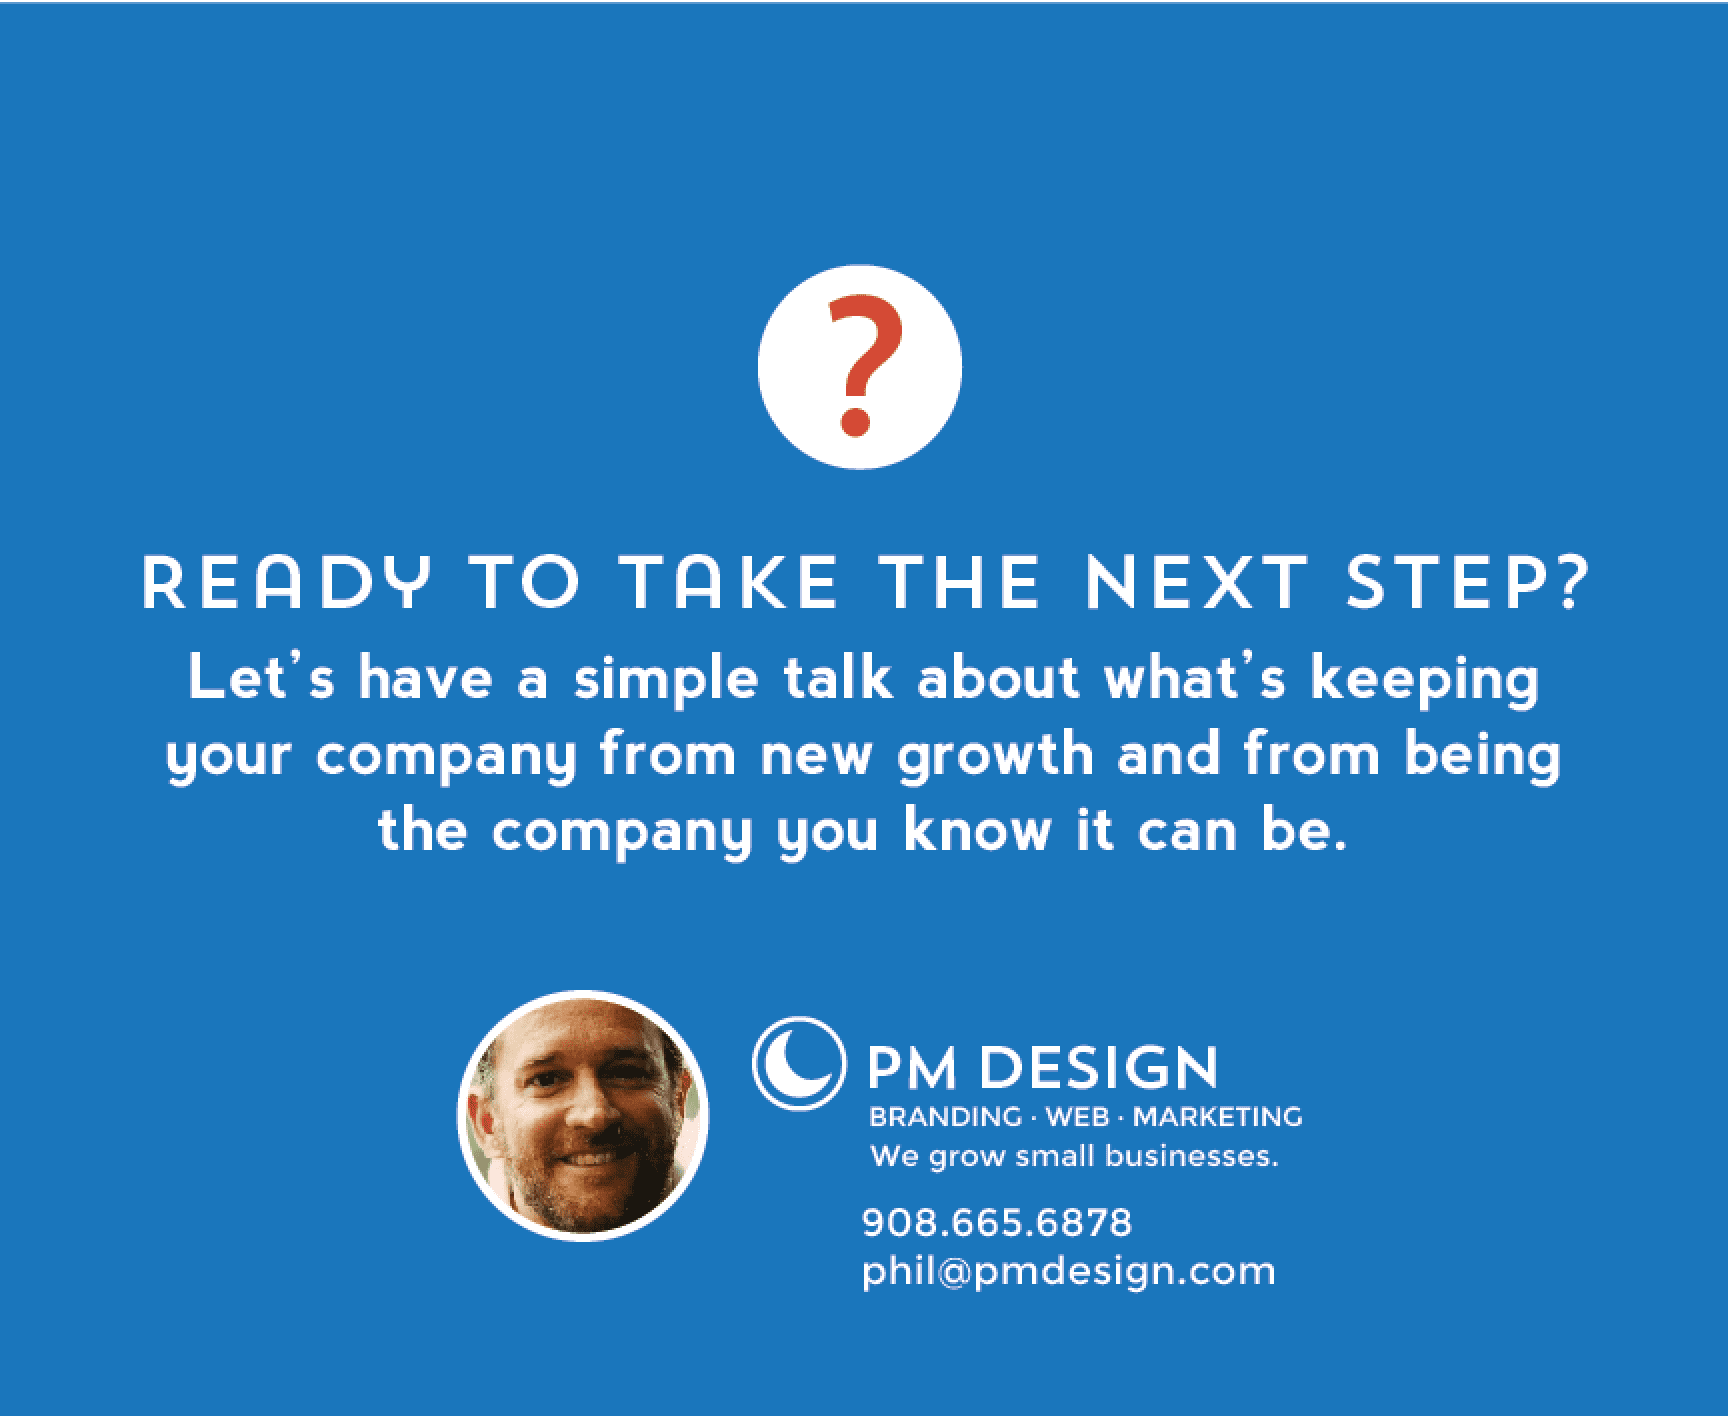 Ready to take the next step? Call Phil Marzo at PM Design